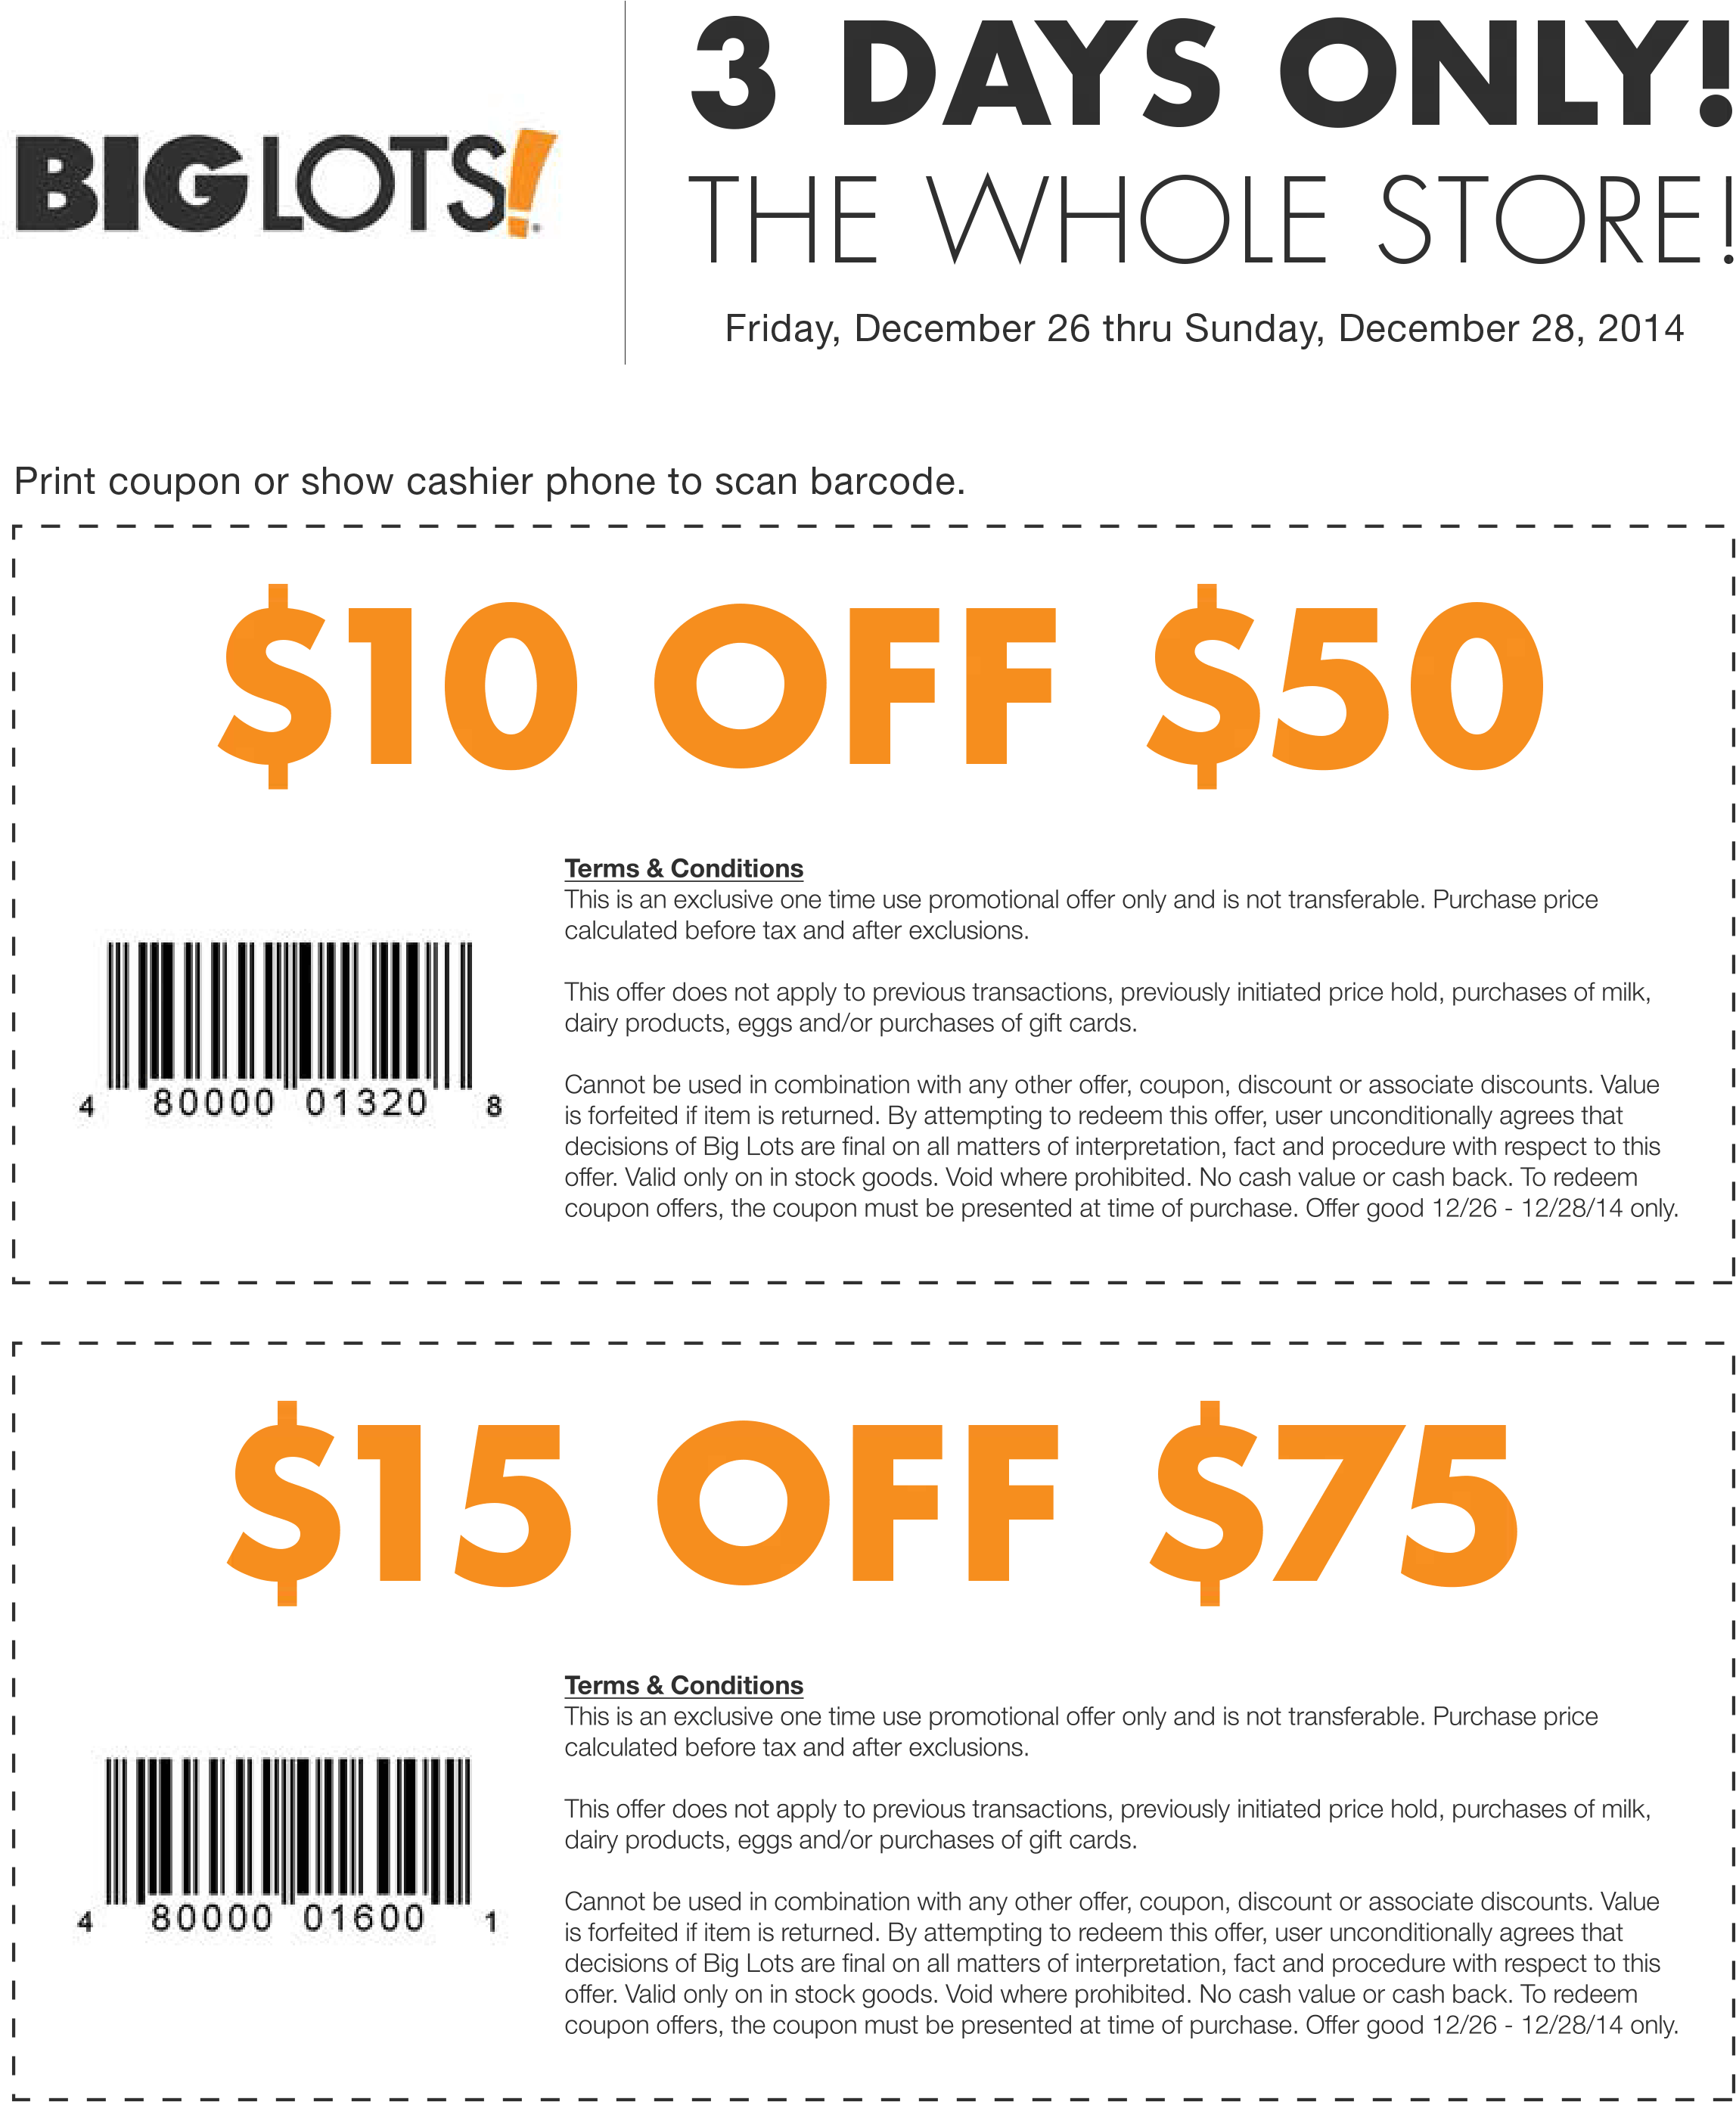 Big Lots Deal! (With images) Print coupons, Coupons